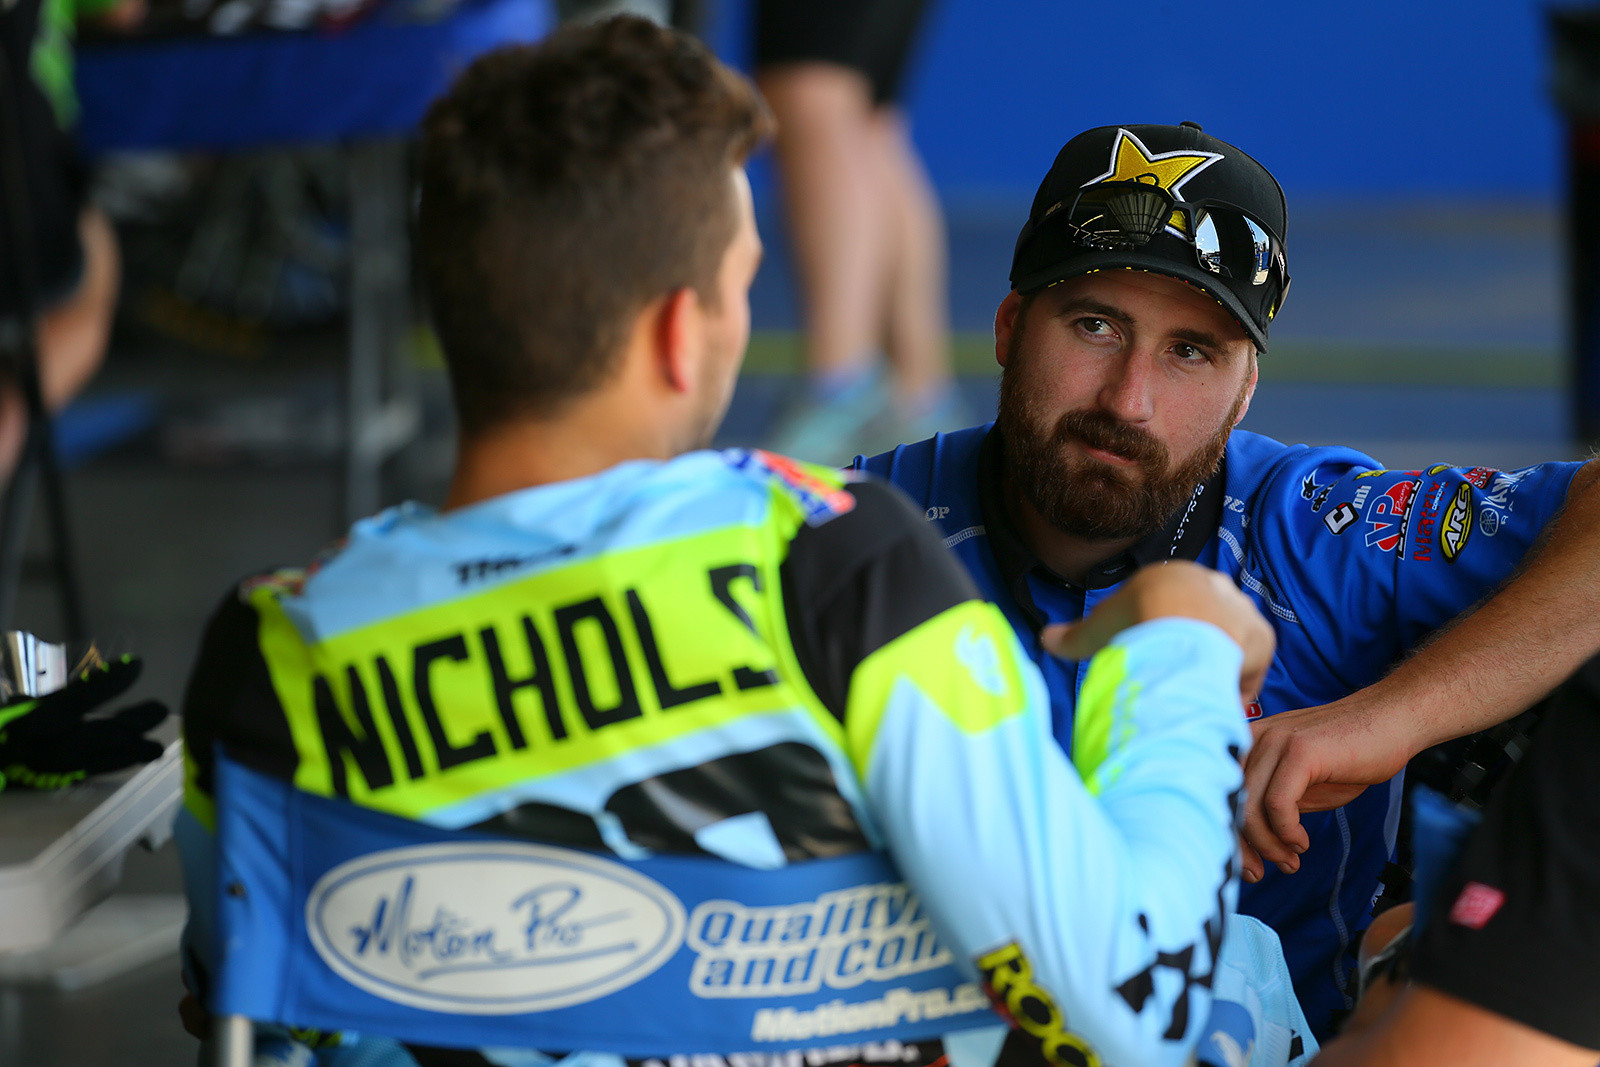 Colt Nichols' mechanic, Trevor Carmichael, checks in with him after the first untimed practice in Daytona.